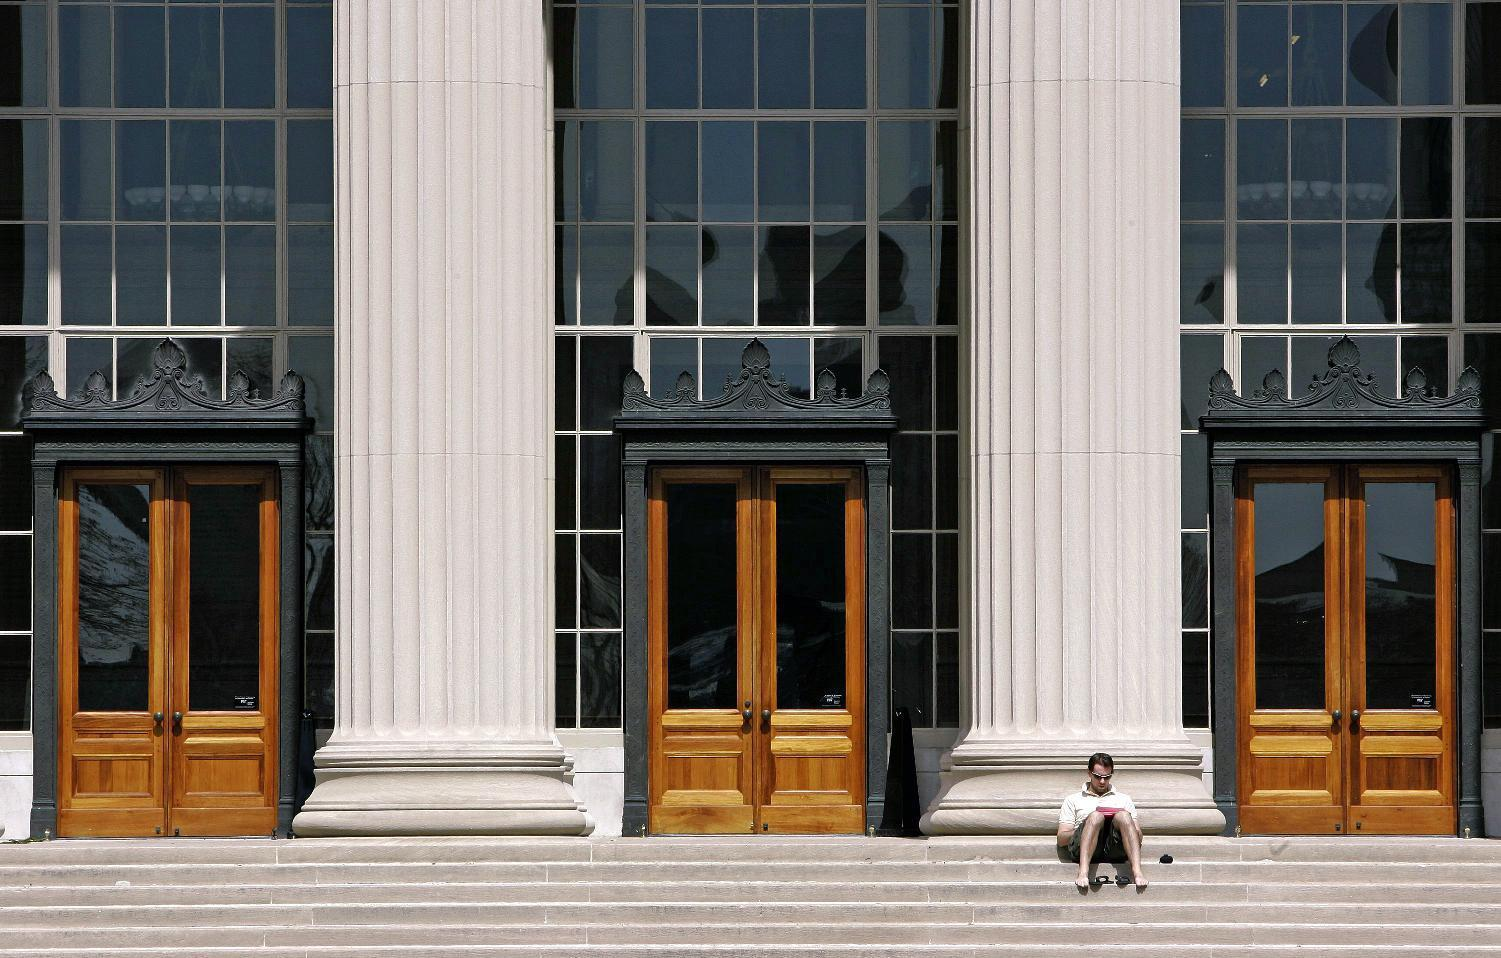 For 1st time, MIT's free online classes can lead to degree